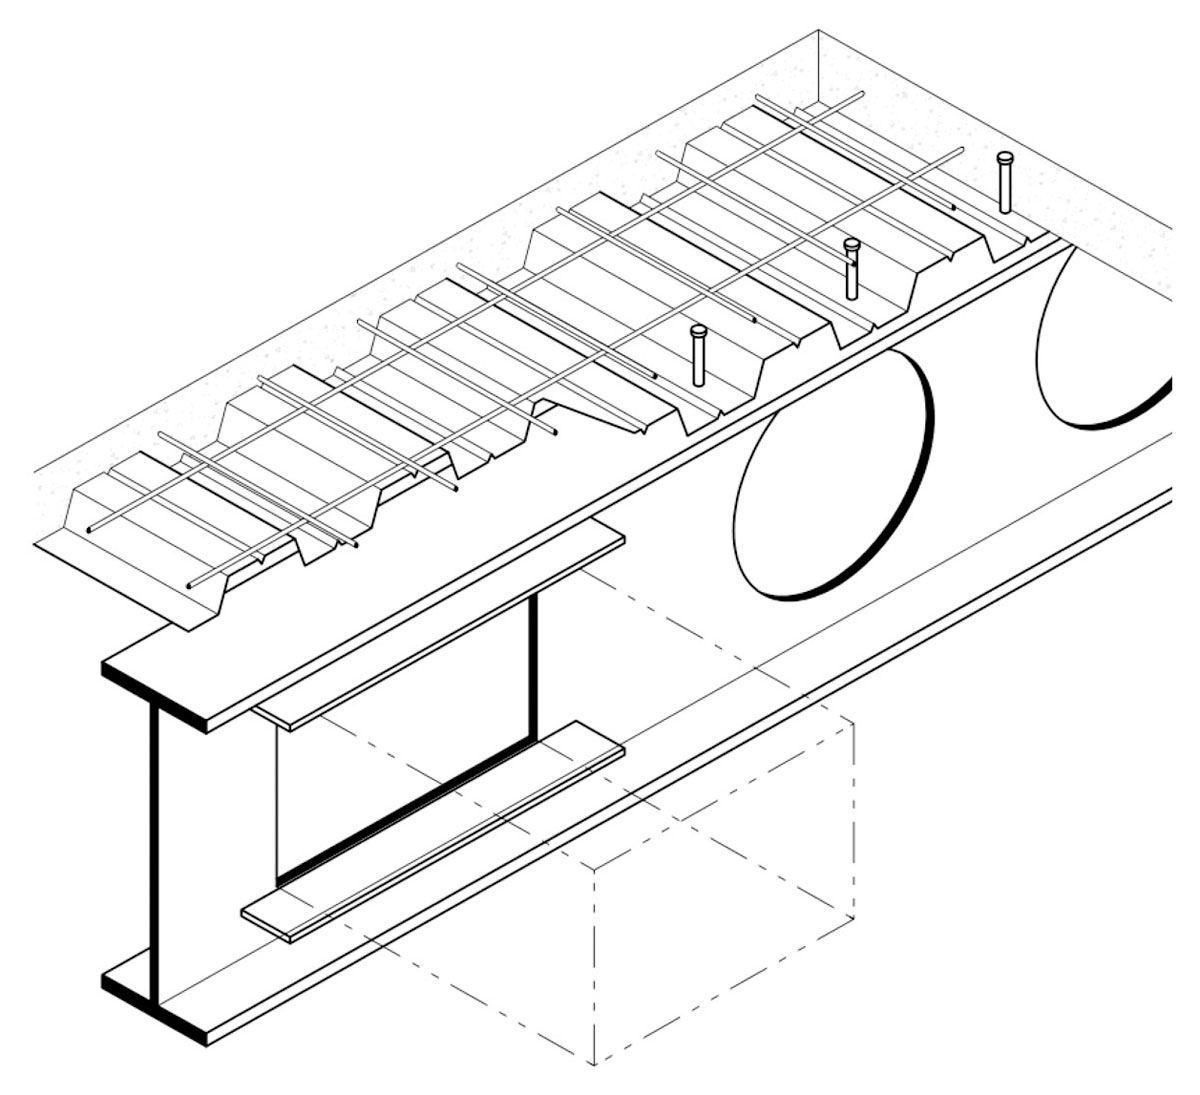 Fire protection of beams with web openings